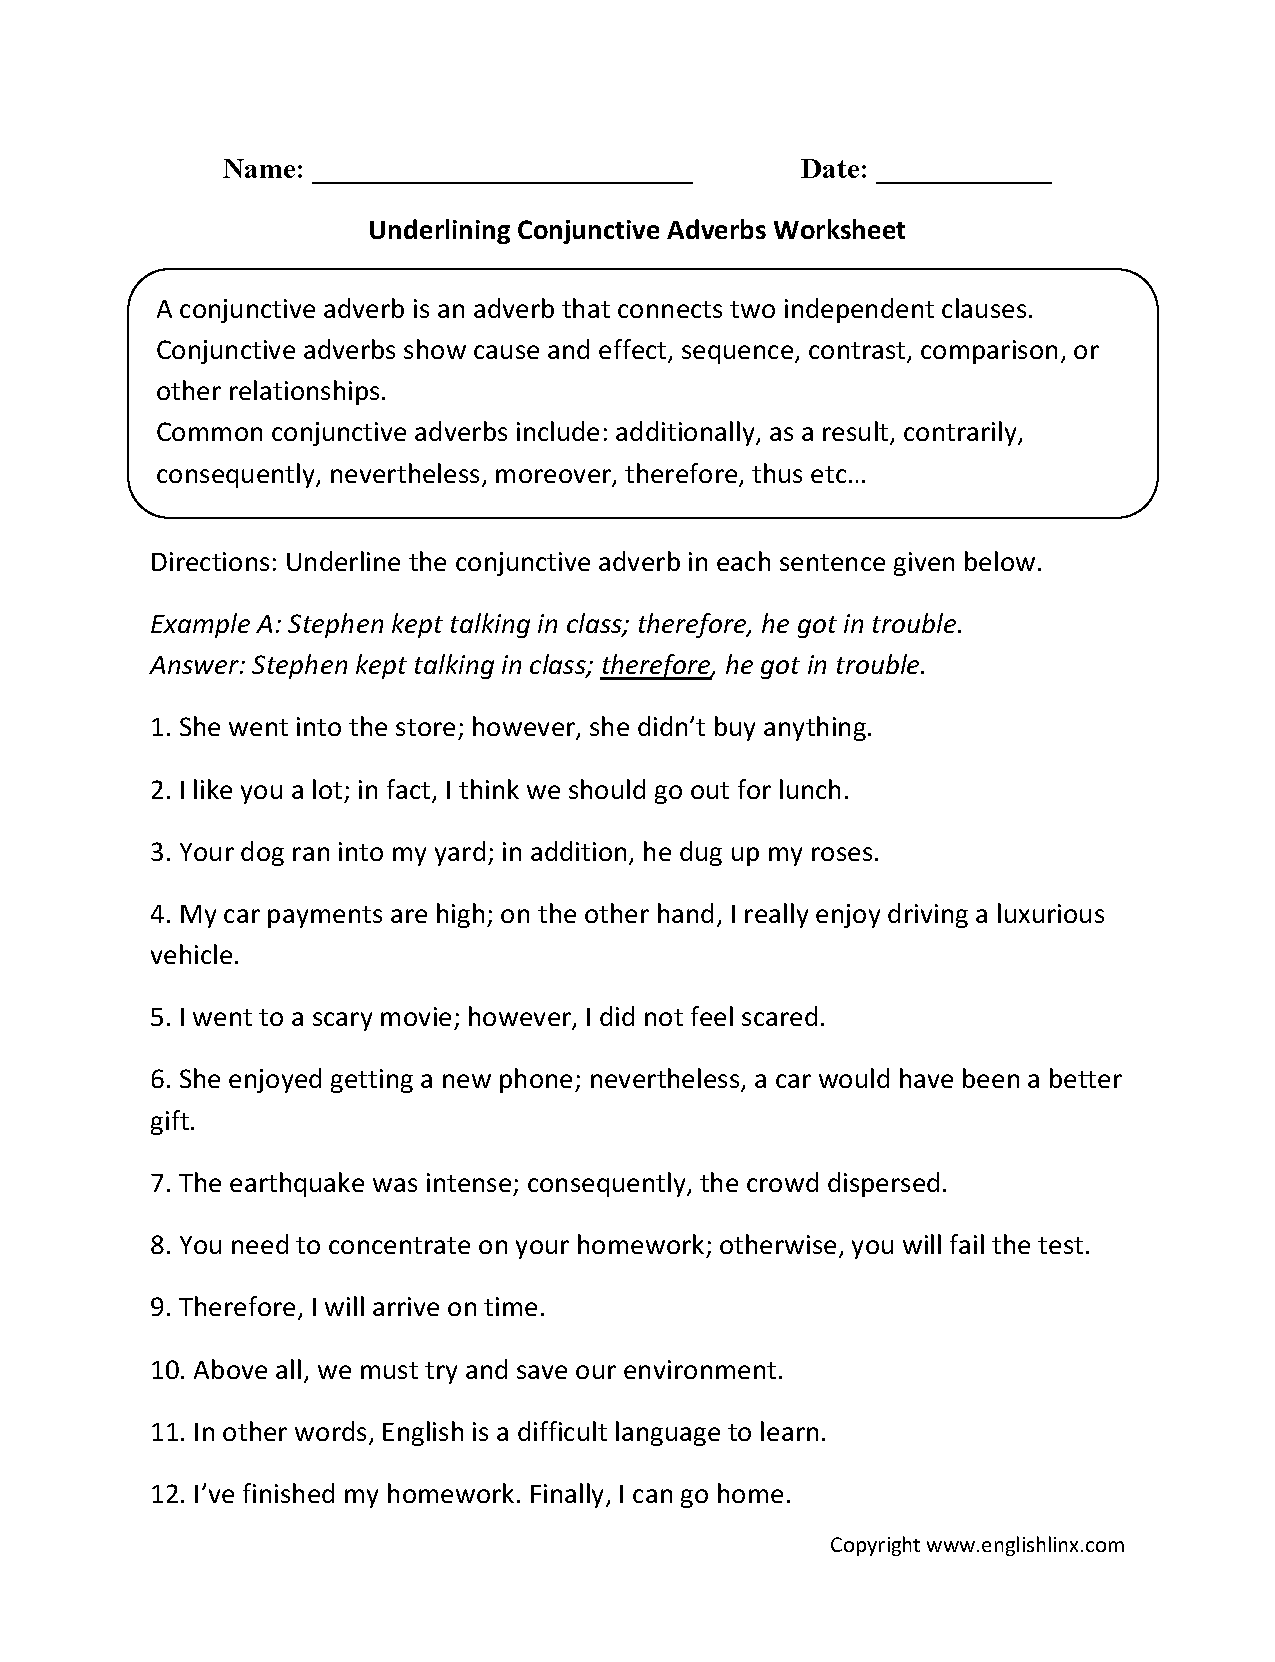 Weirdmailus  Surprising Englishlinxcom  Conjunctions Worksheets With Great Worksheet With Easy On The Eye Vocabulary Worksheets Th Grade Also Solid Liquid Gas Worksheet First Grade In Addition Nd Grade Math Worksheets Subtraction With Regrouping And Word Problem Inequalities Worksheet As Well As Sixth Grade Spelling Words Worksheets Additionally Energy Transfer Worksheets From Englishlinxcom With Weirdmailus  Great Englishlinxcom  Conjunctions Worksheets With Easy On The Eye Worksheet And Surprising Vocabulary Worksheets Th Grade Also Solid Liquid Gas Worksheet First Grade In Addition Nd Grade Math Worksheets Subtraction With Regrouping From Englishlinxcom